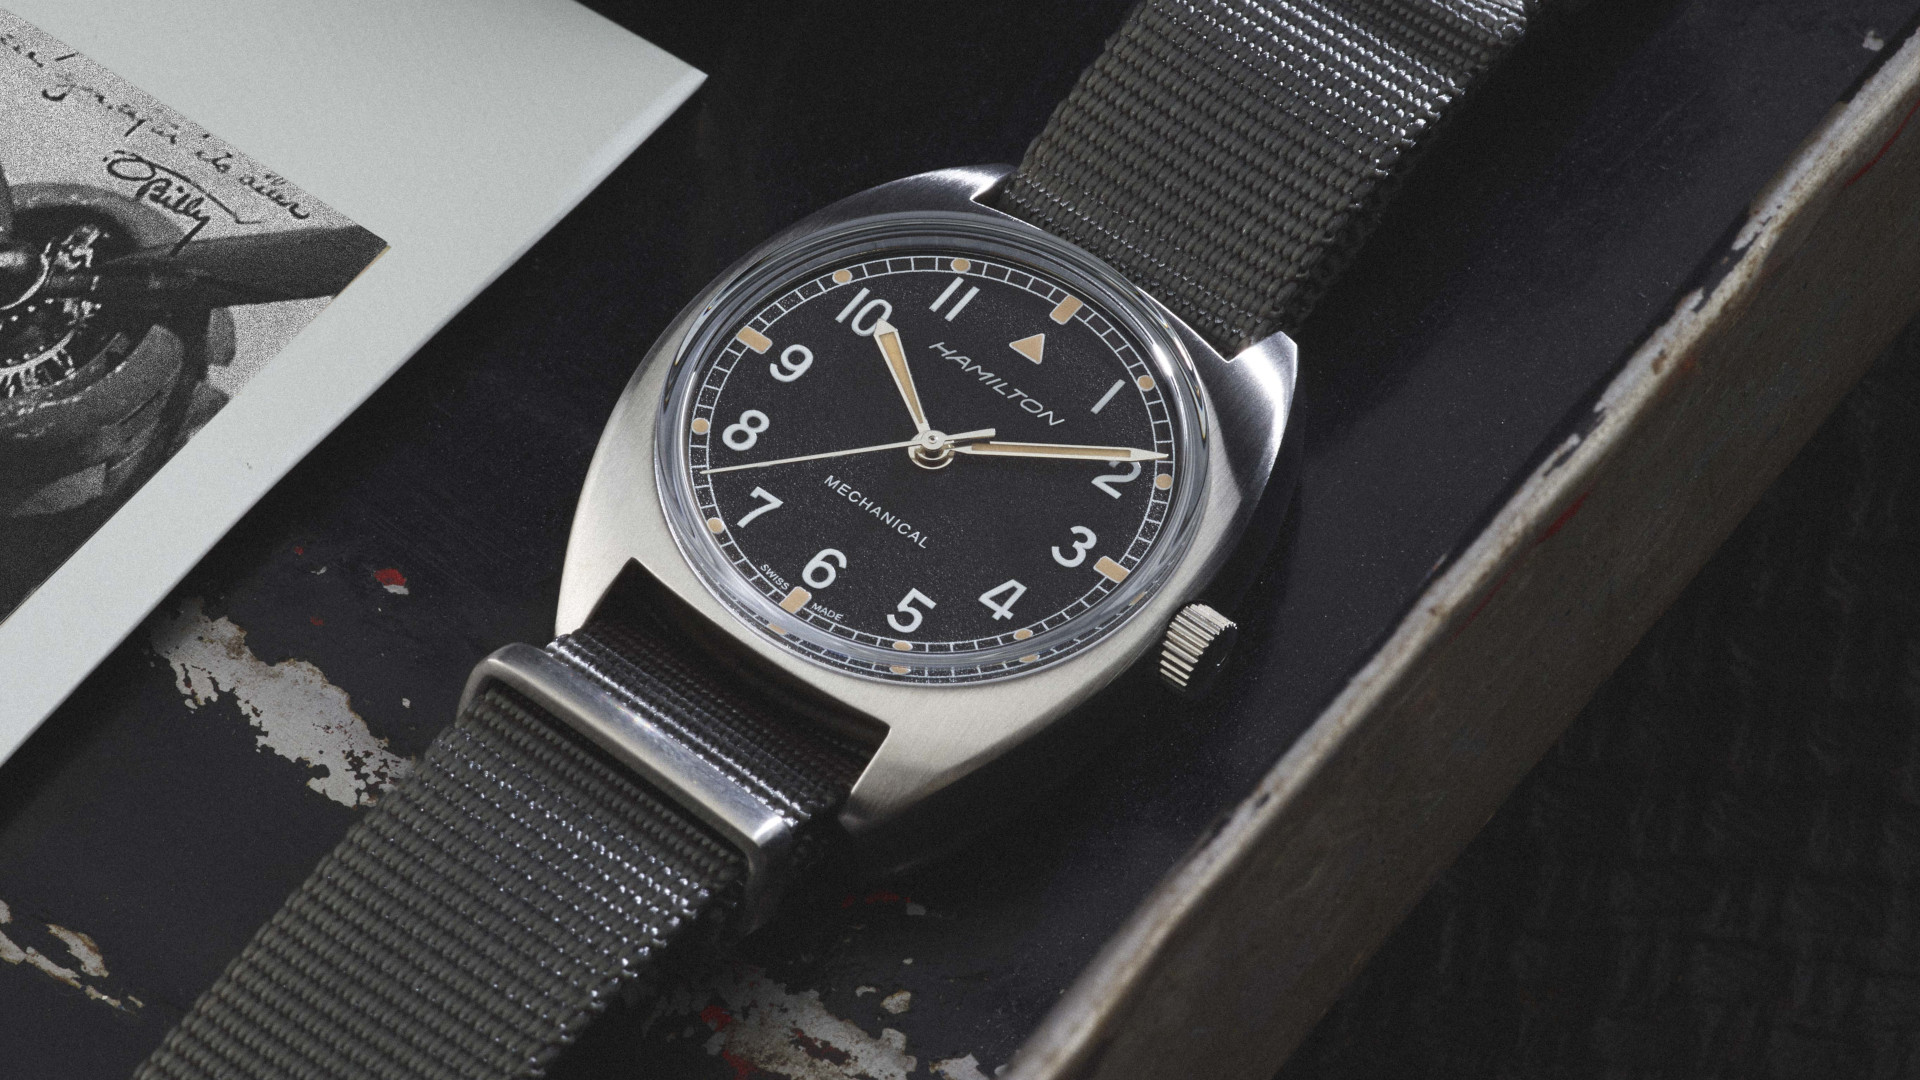 Hamilton Khaki Pilot Pioneer: A pilot's watch for the purists